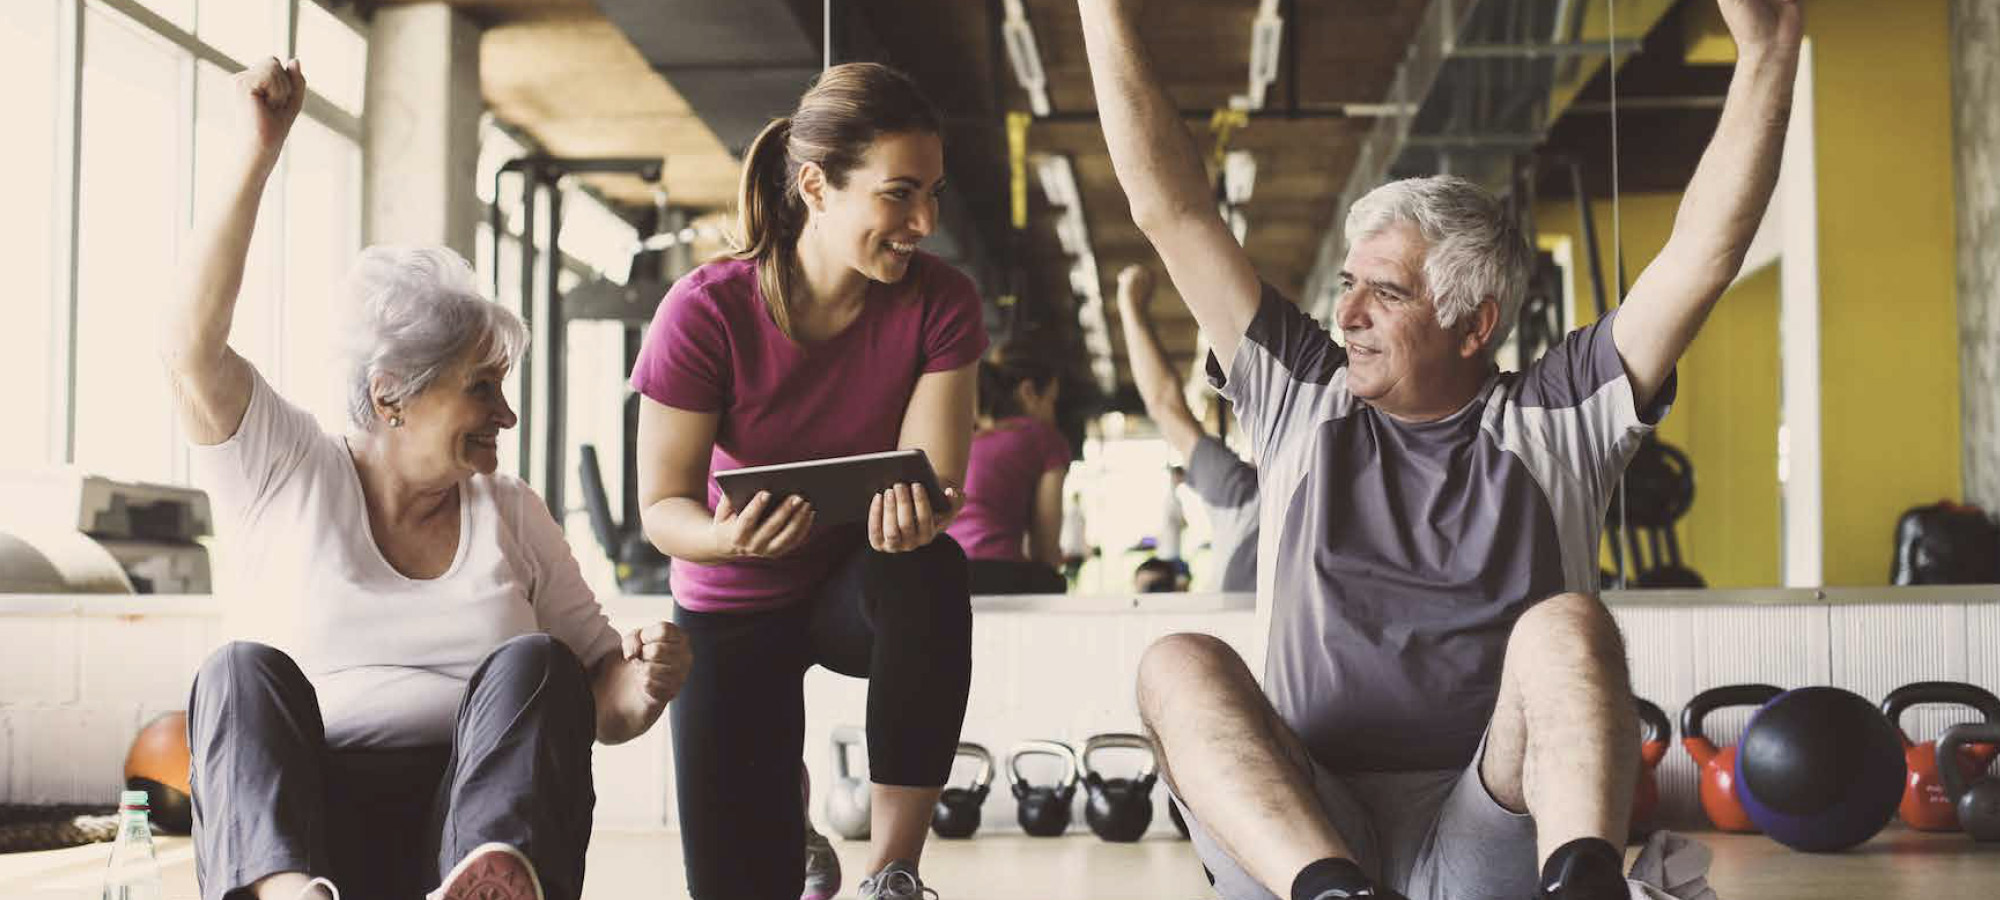 Get older people moving or face social care crisis, says ukactive report